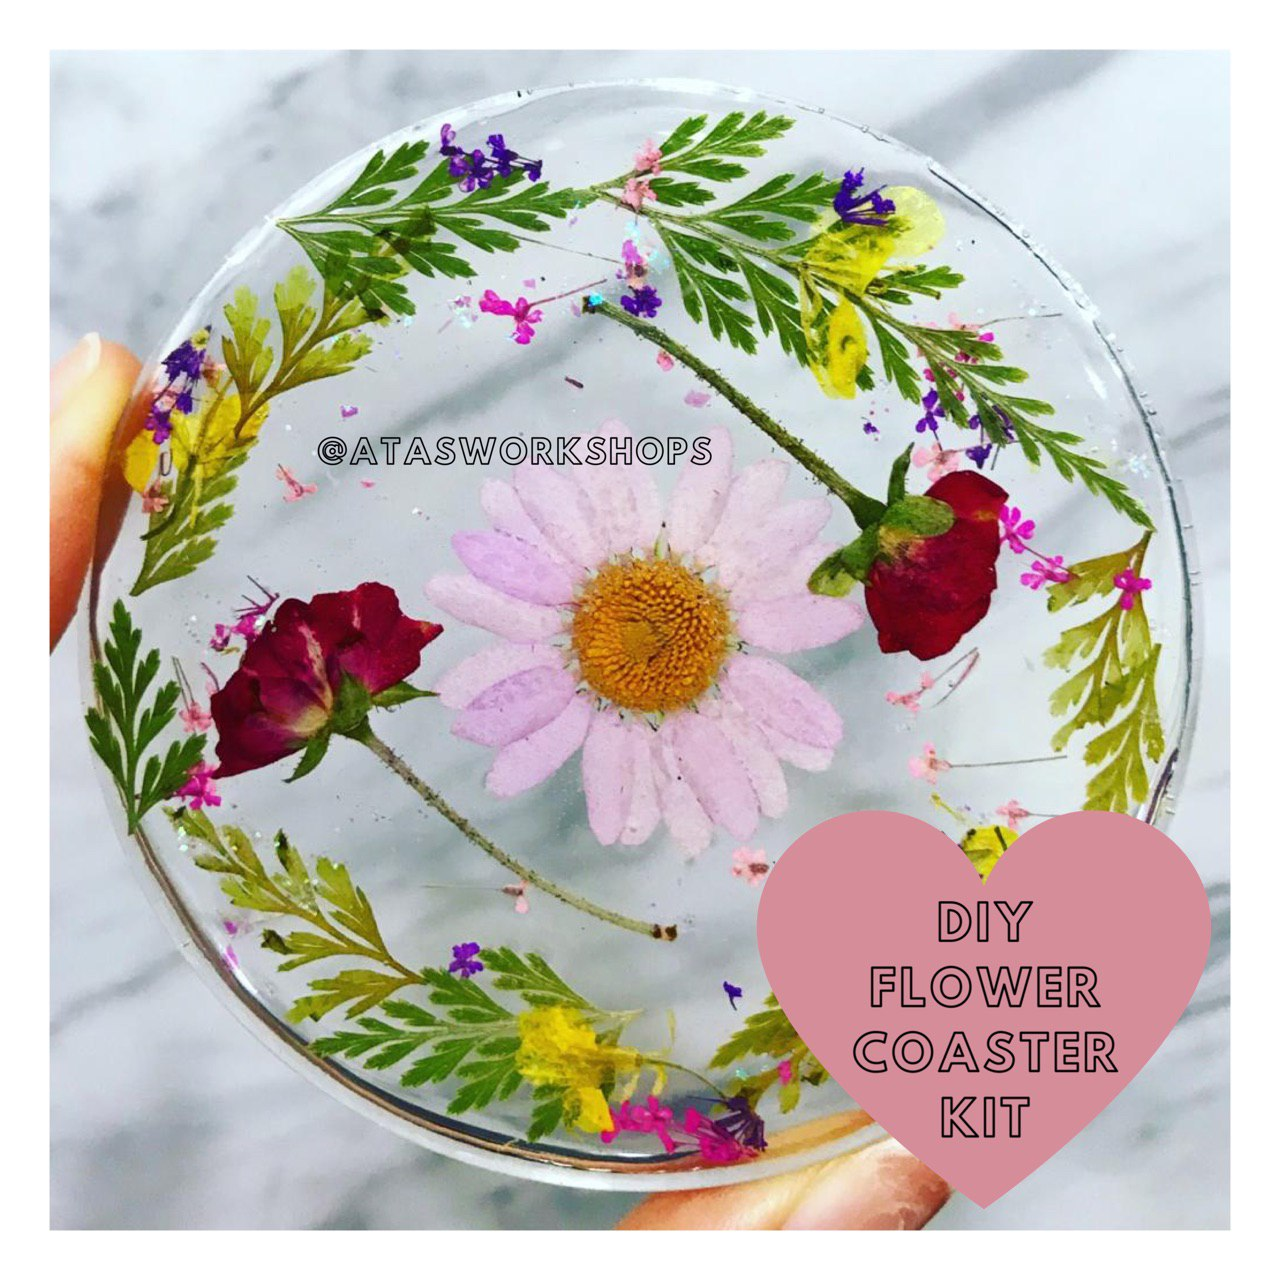 DIY Flower Coaster Kit